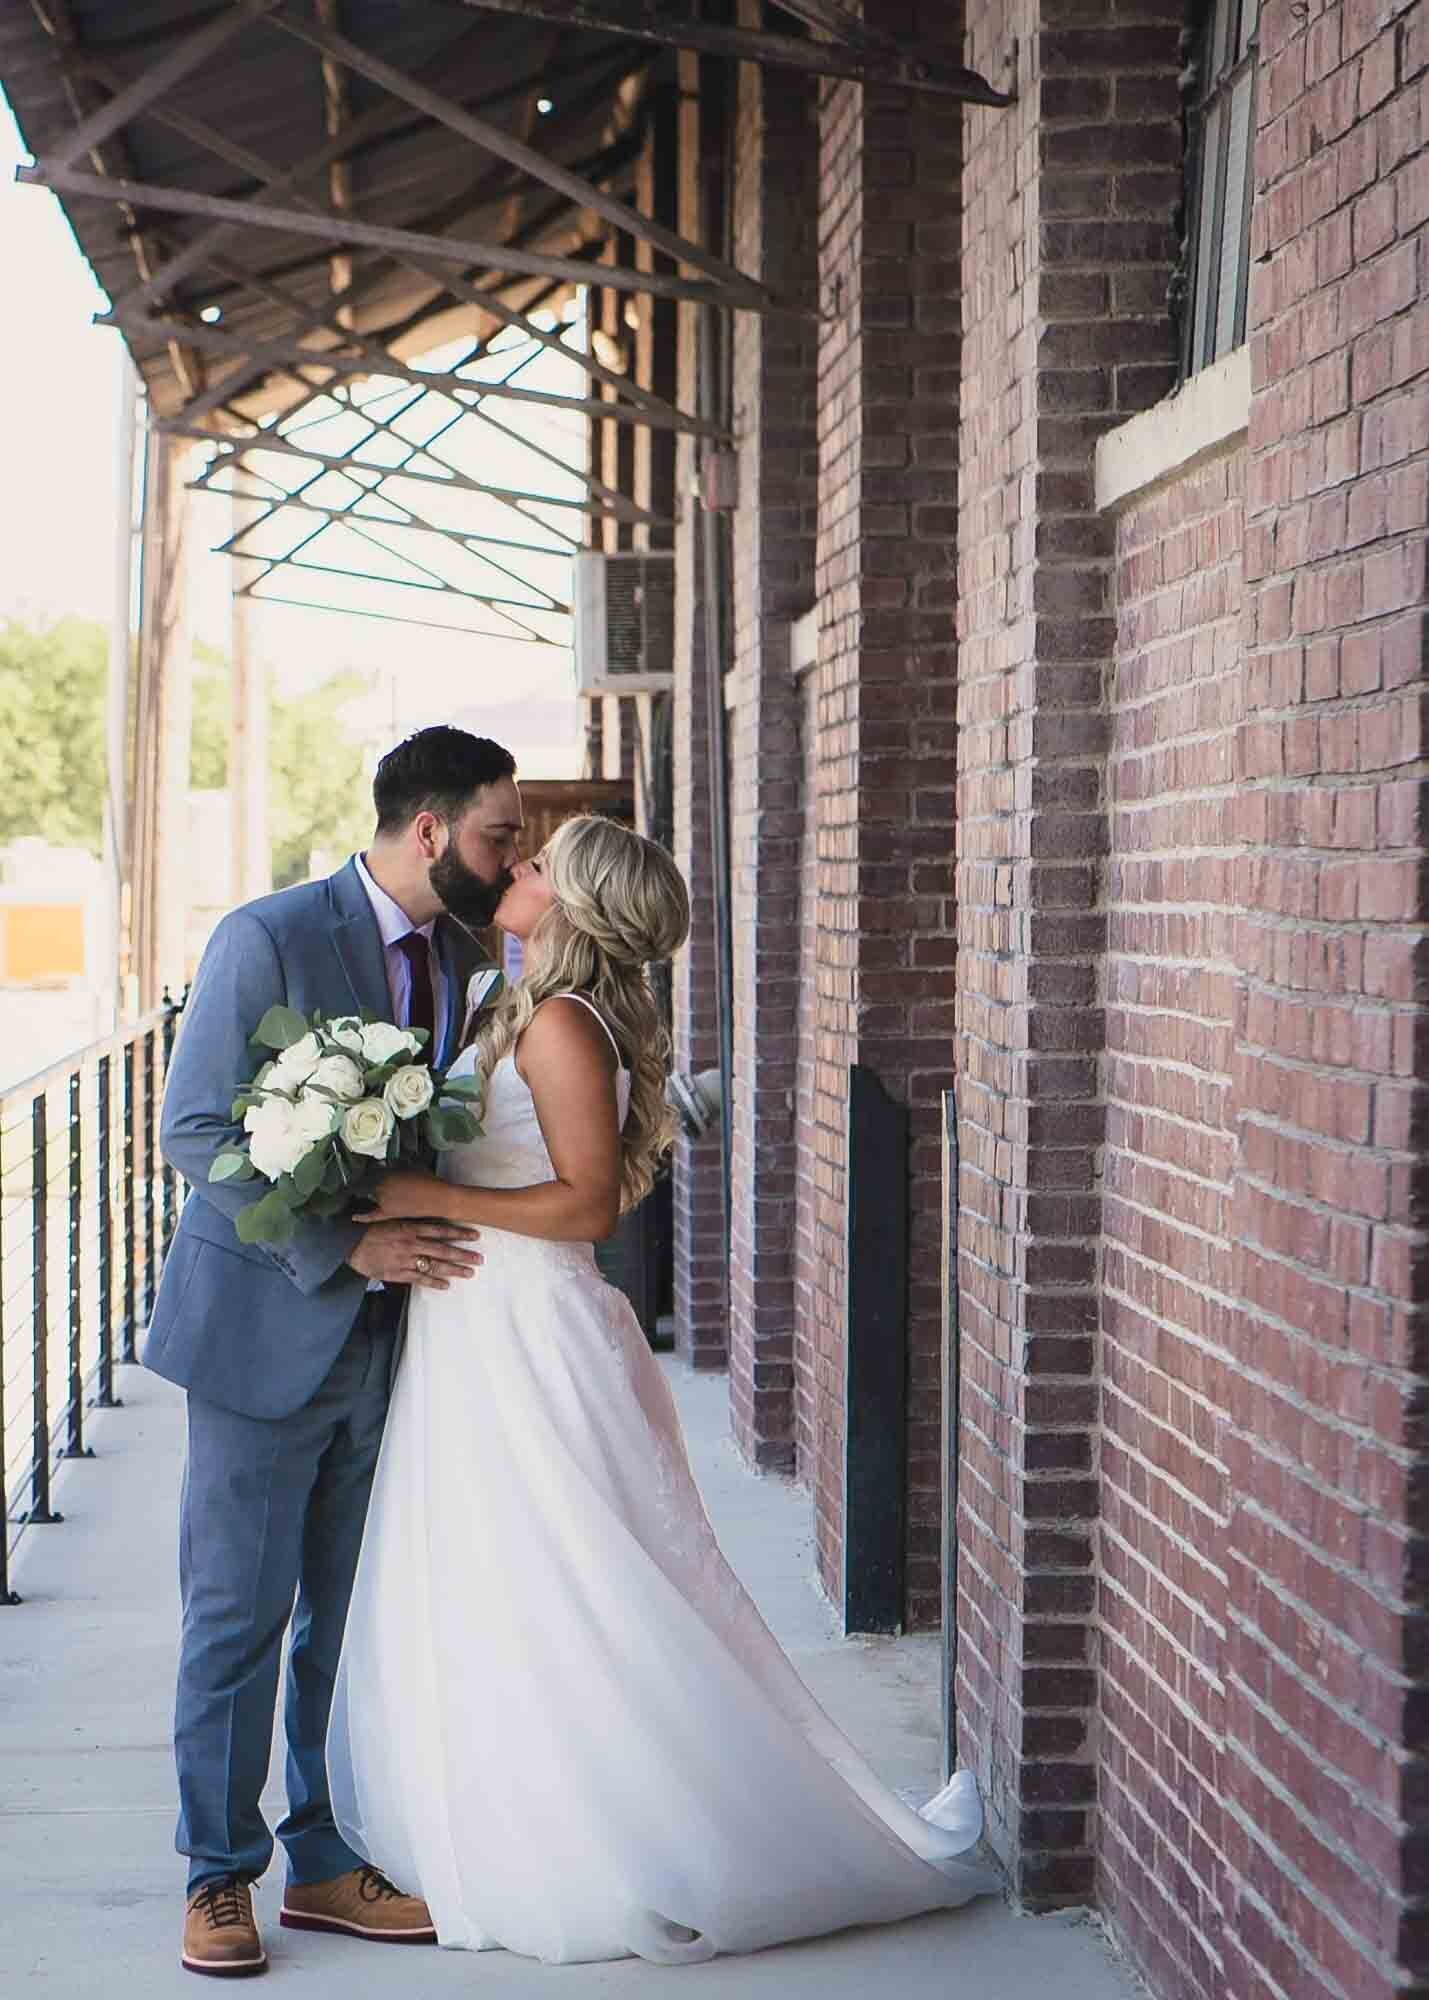 East-McKinney-Luxury-Wedding-Venue-Dallas-Fort-Worth-McKinney-Texas-118